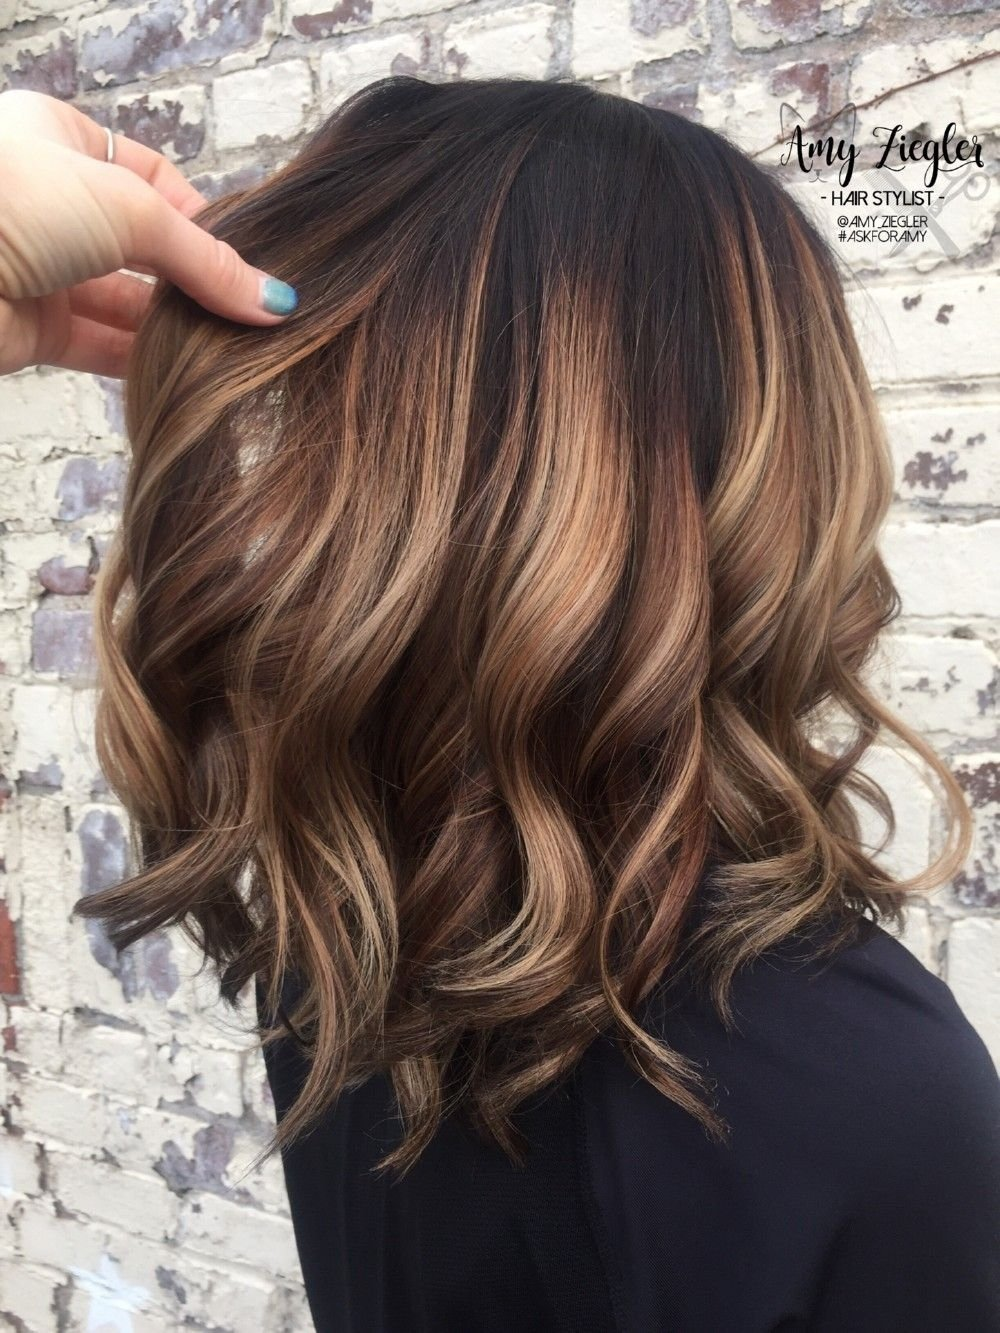 10 Spectacular Hair Dye Ideas For Brown Hair